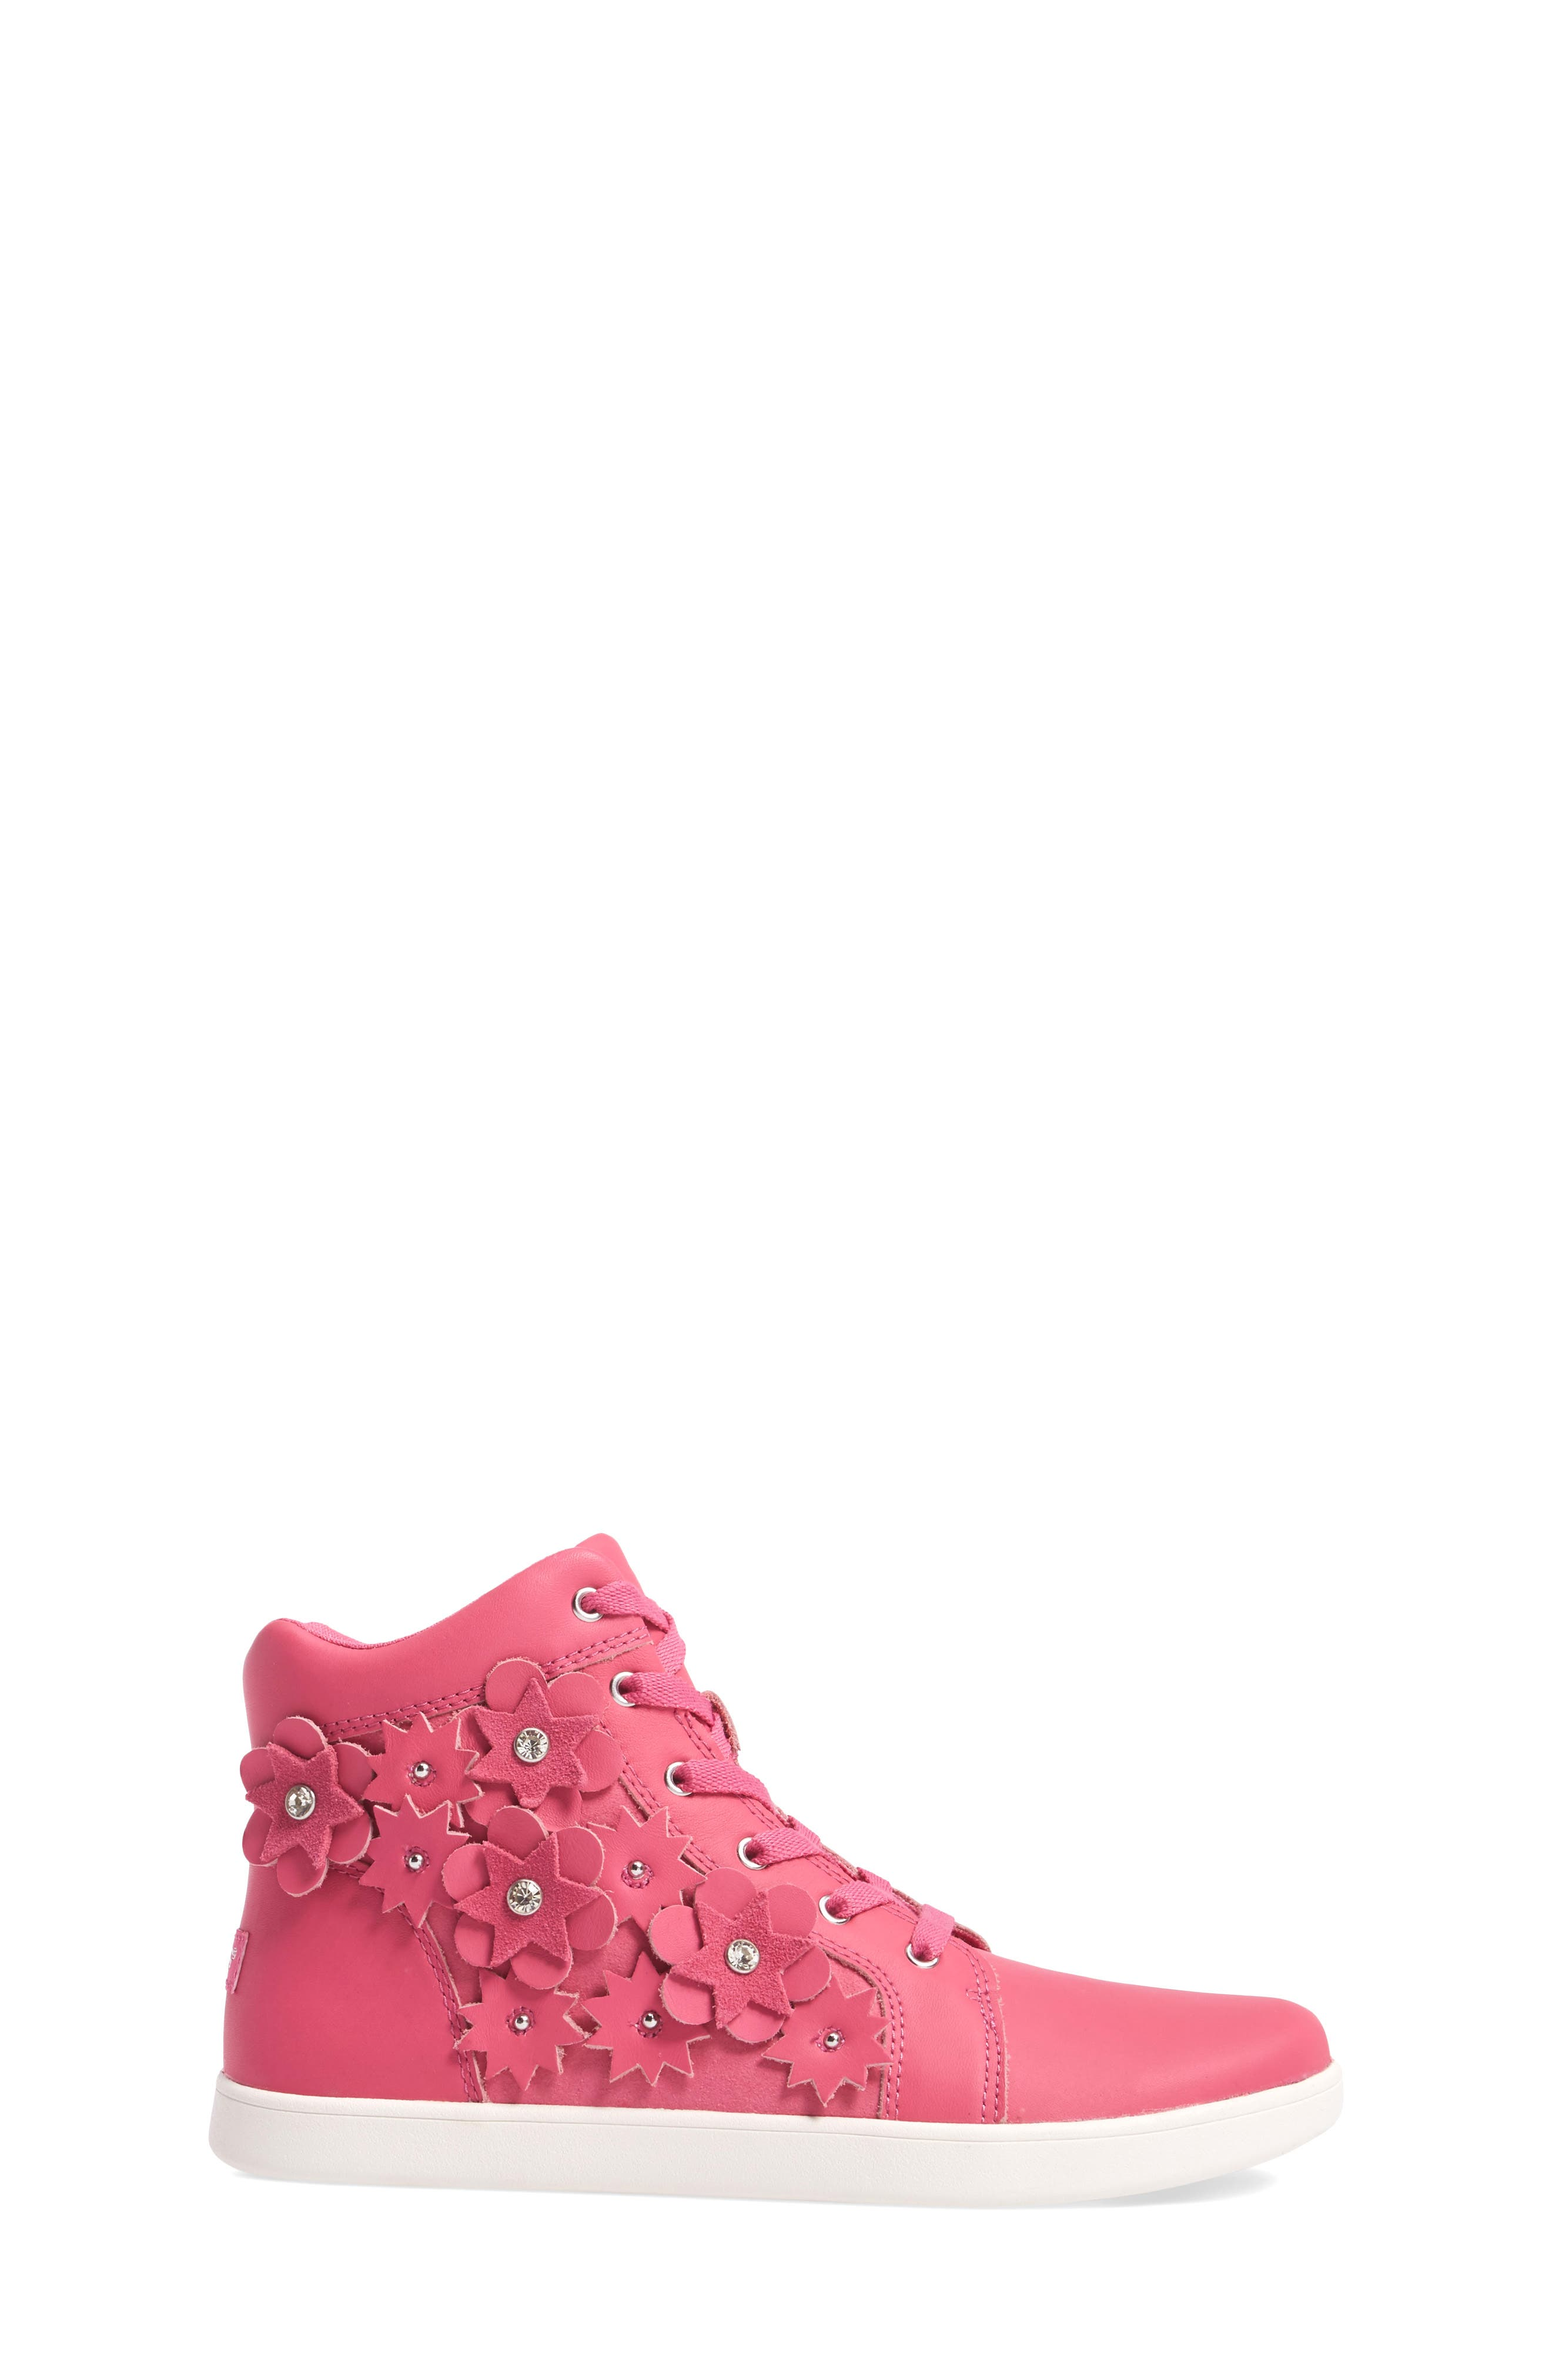 Alternate Image 3  - UGG® Schyler Petal Embellished High Top Sneaker (Little Kid & Big Kid)